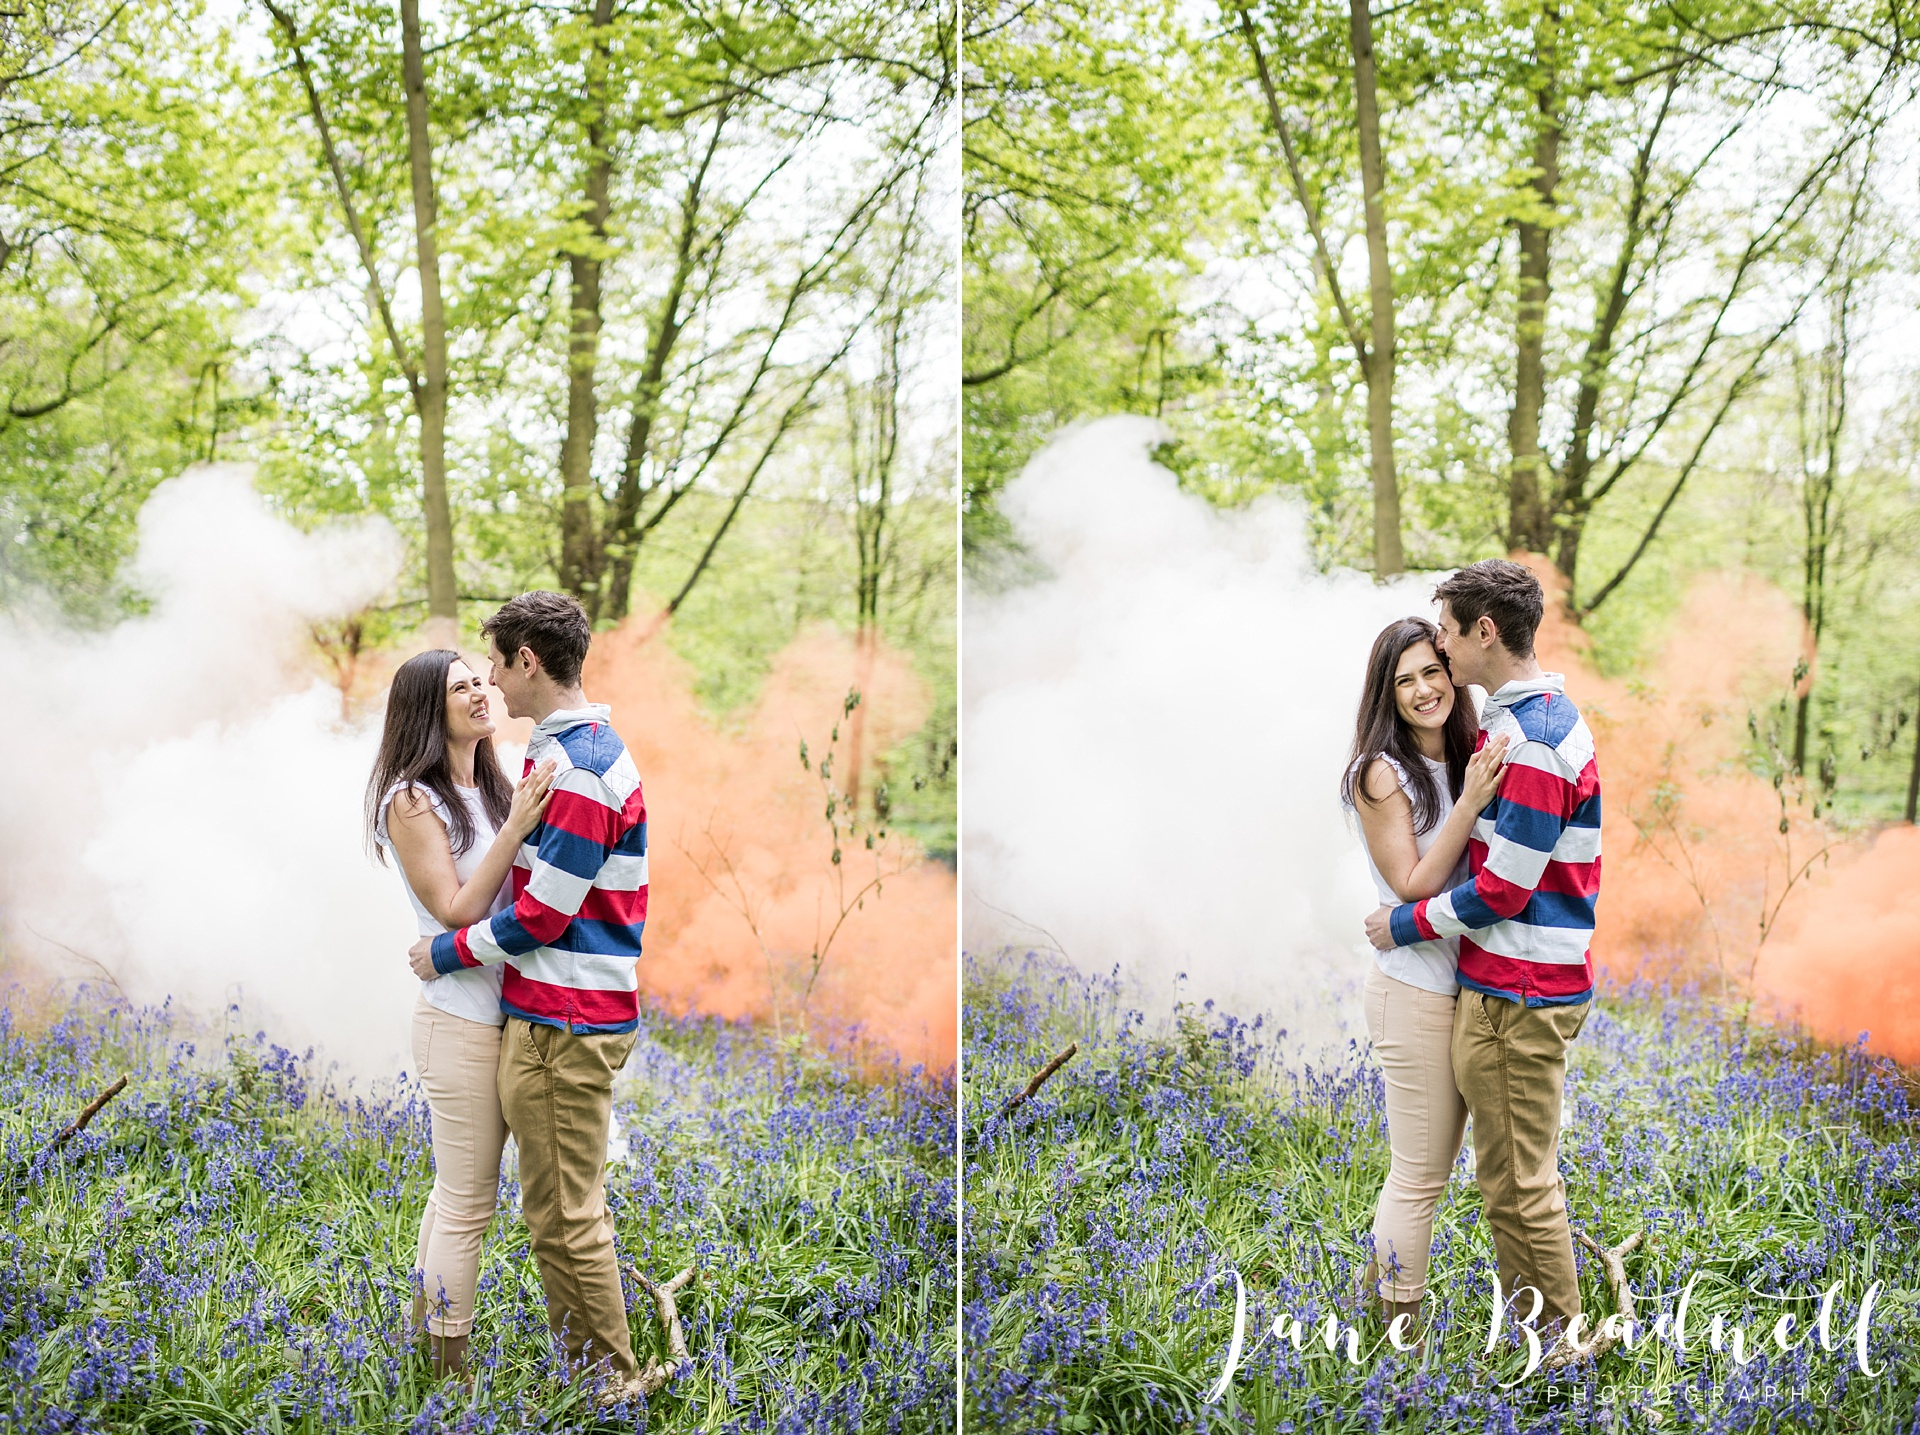 Yorkshire Sculpture Park Engagement Shoot Leeds wedding photographer Jane Beadnell_0053